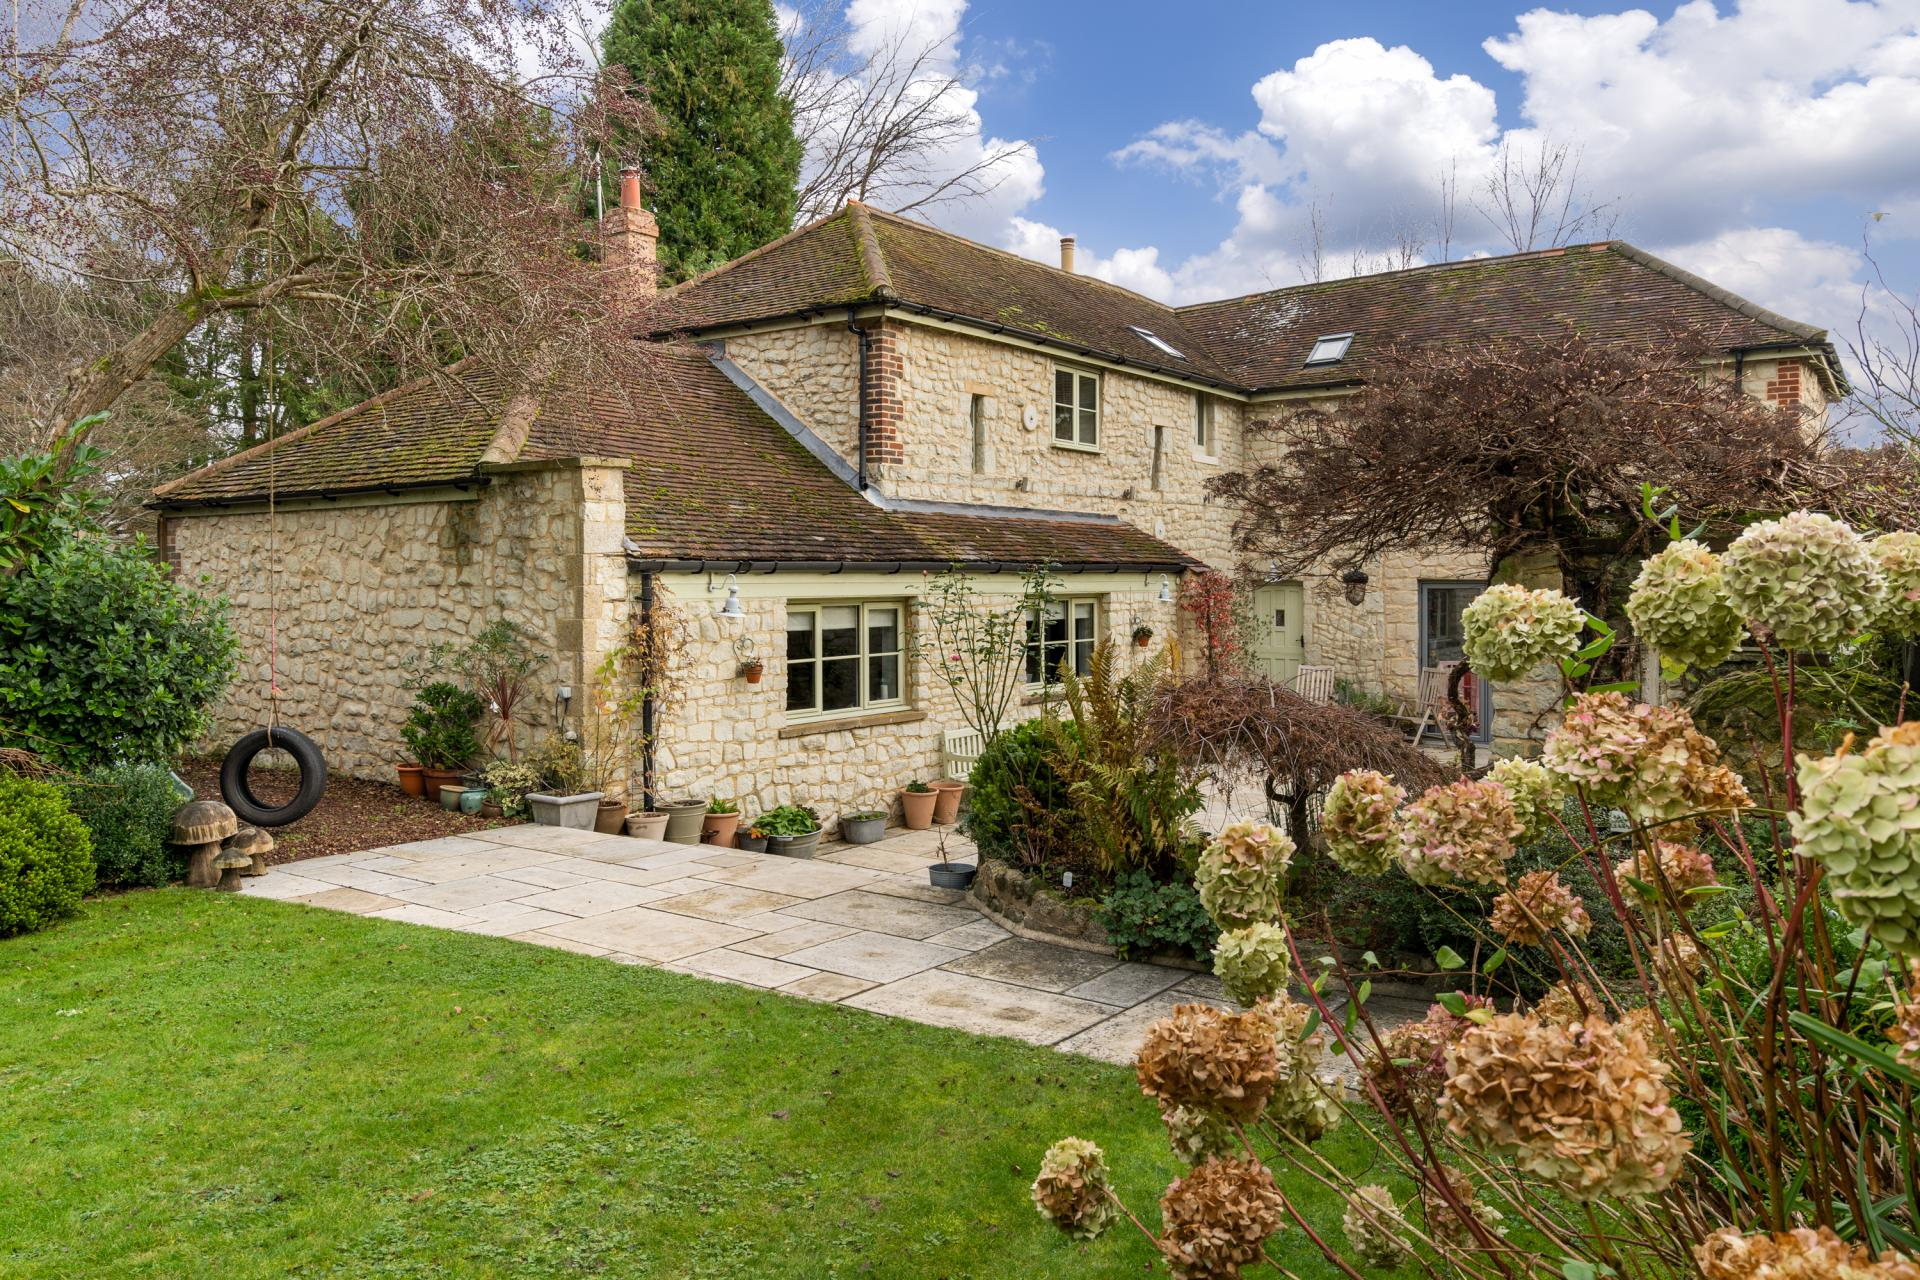 stone built English Victorian villa with olive painted doors and windows